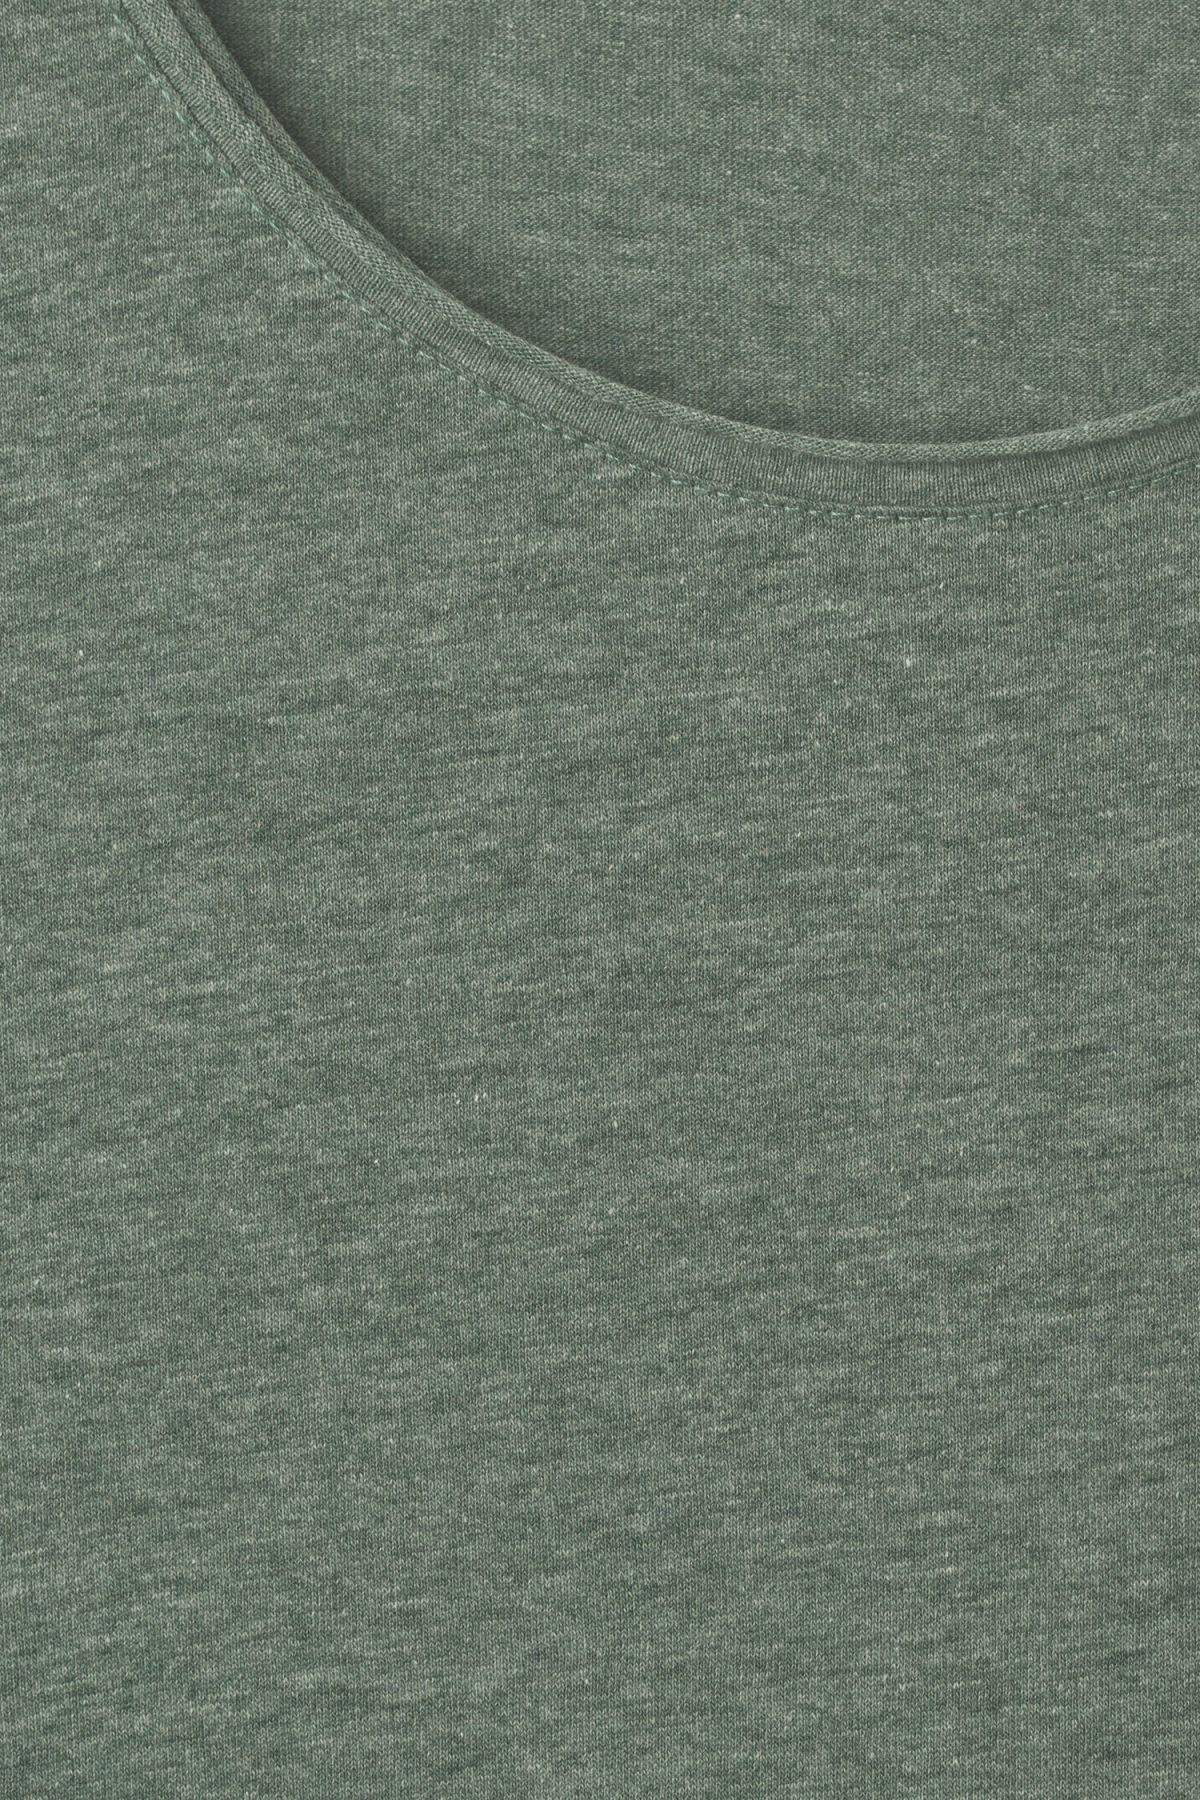 Detailed image of Weekday dark t-shirt in turquoise